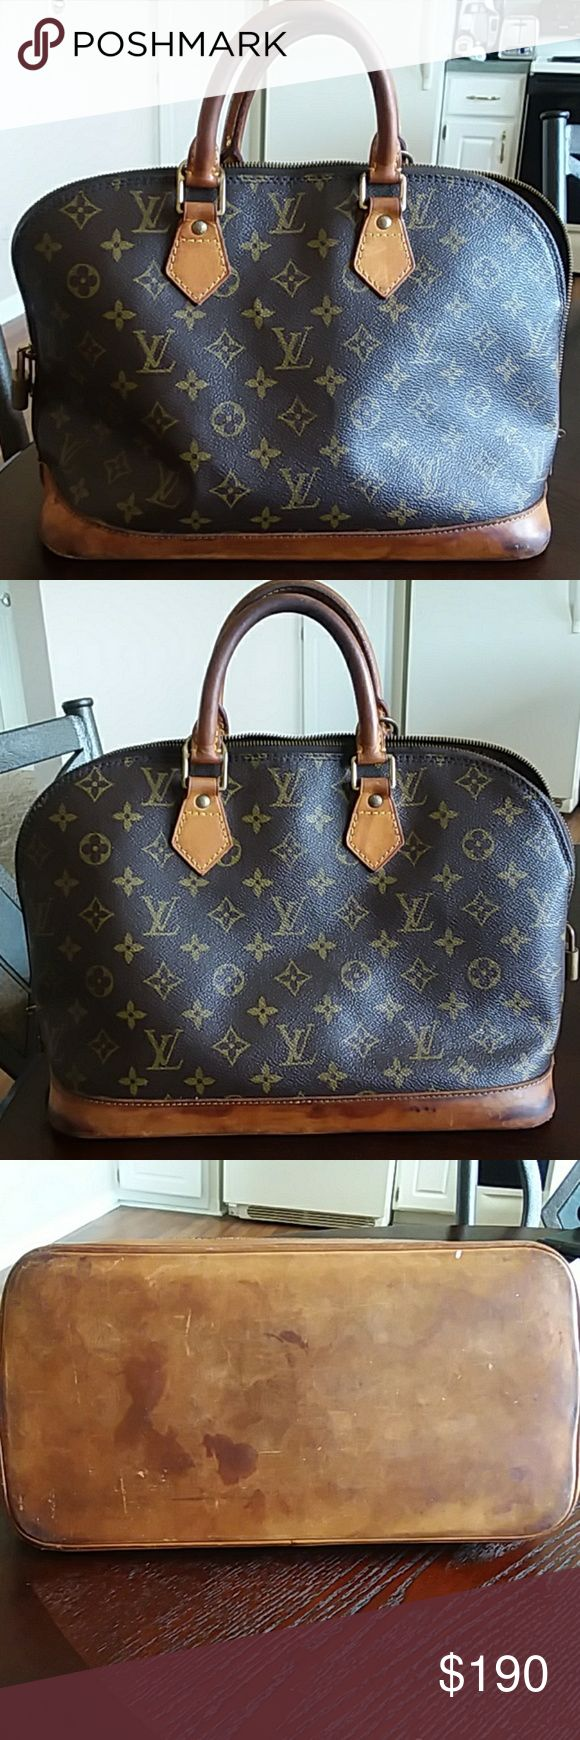 Vintage Louis Vuitton Monogram  Alma Bag With the proper care this bag can me bought back to life. I was told to use some cadillac leather cleaner. I rather  sell it to someone that can bring it back to  life and know what they are doing.   All flaws are shown in the picture. There aren't any rips  or tears on the inside of the bag. Louis Vuitton Bags Satchels